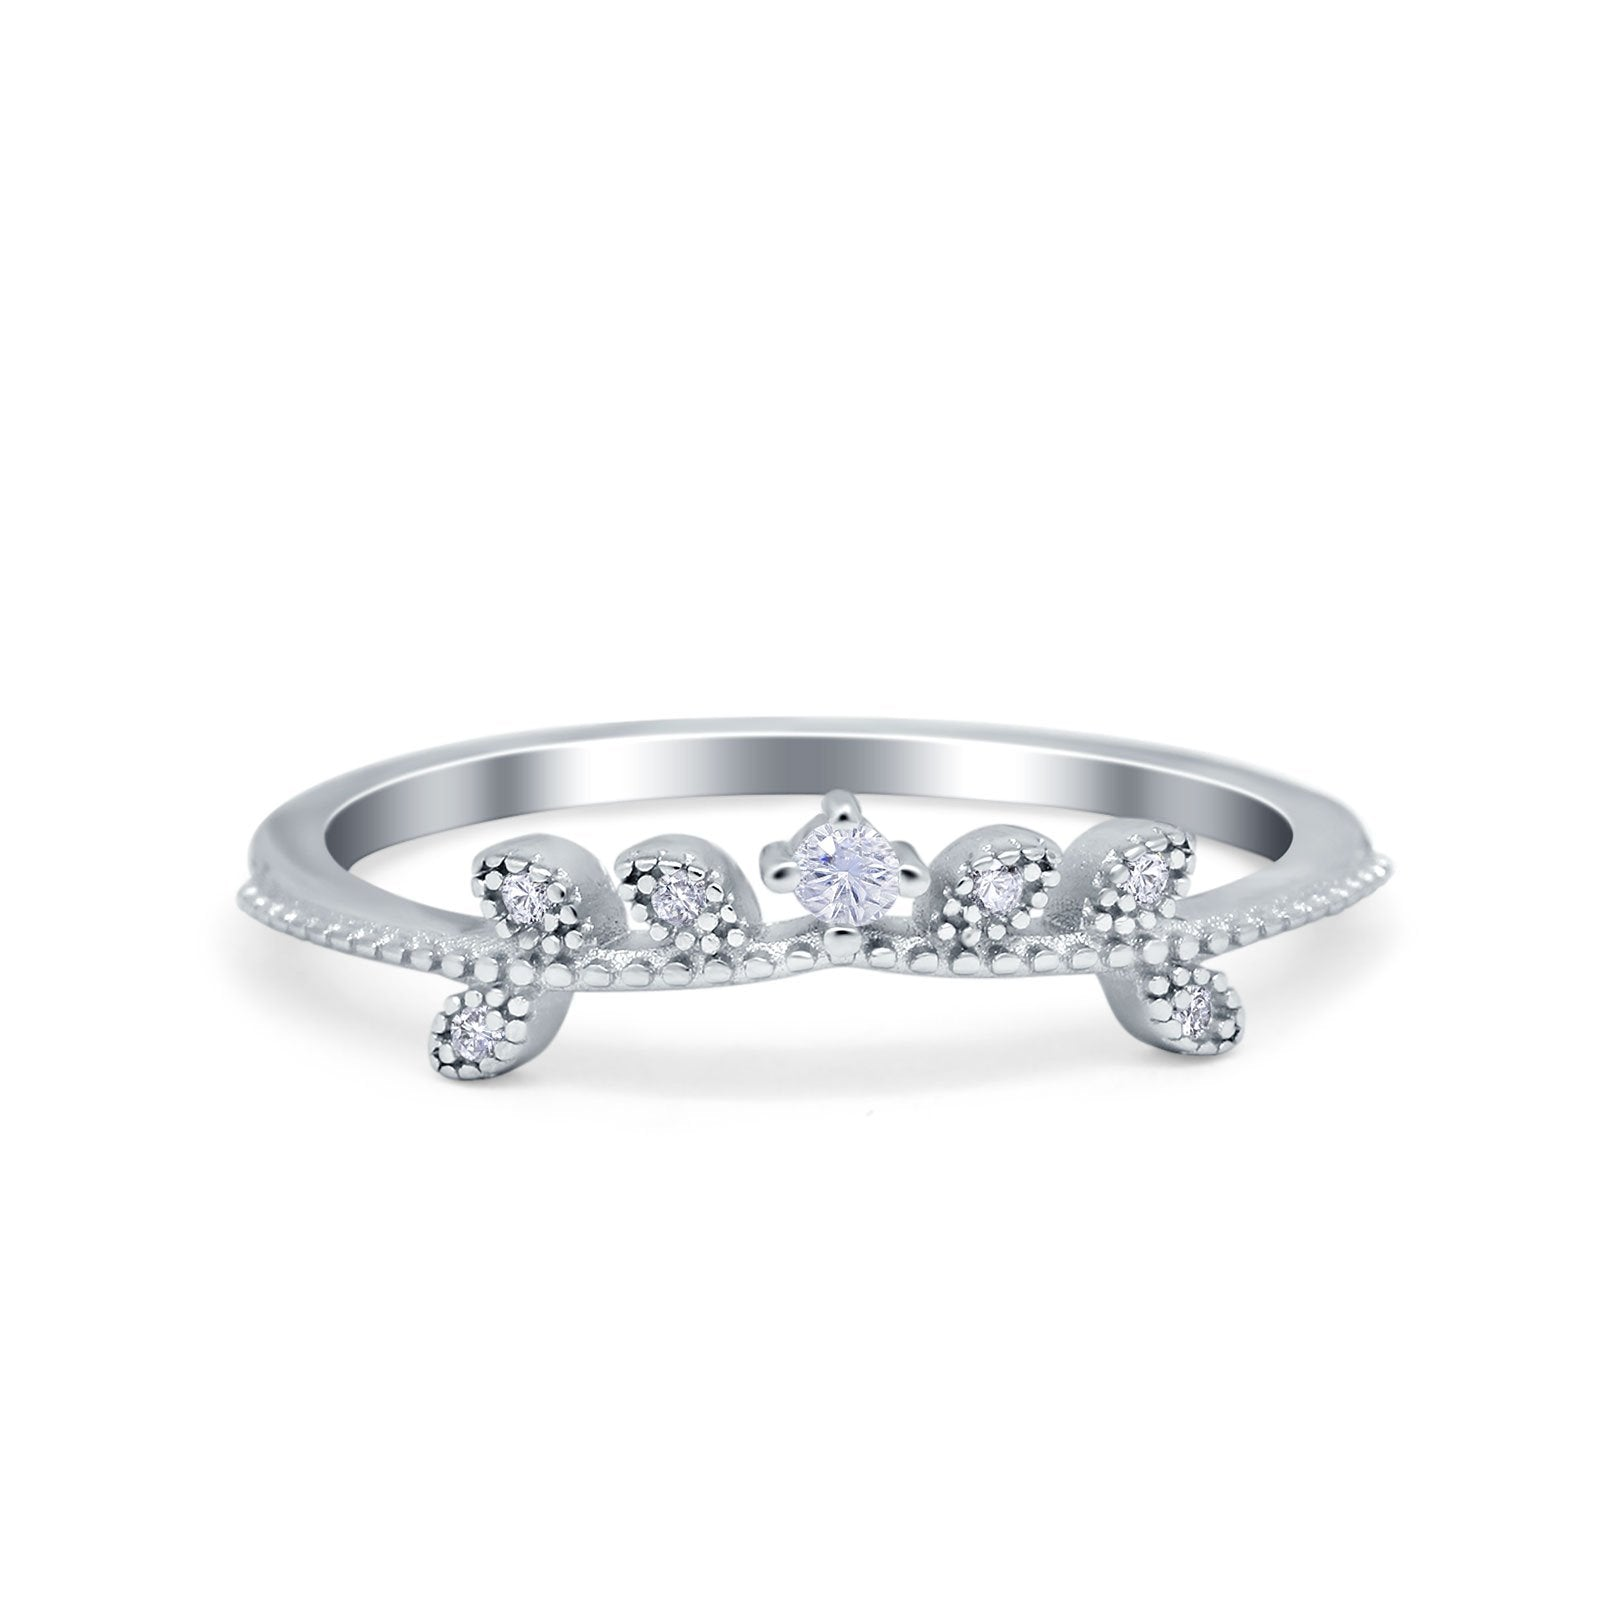 Wedding Band Petite Dainty Eternity Ring Round Simulated CZ 925 Sterling Silver